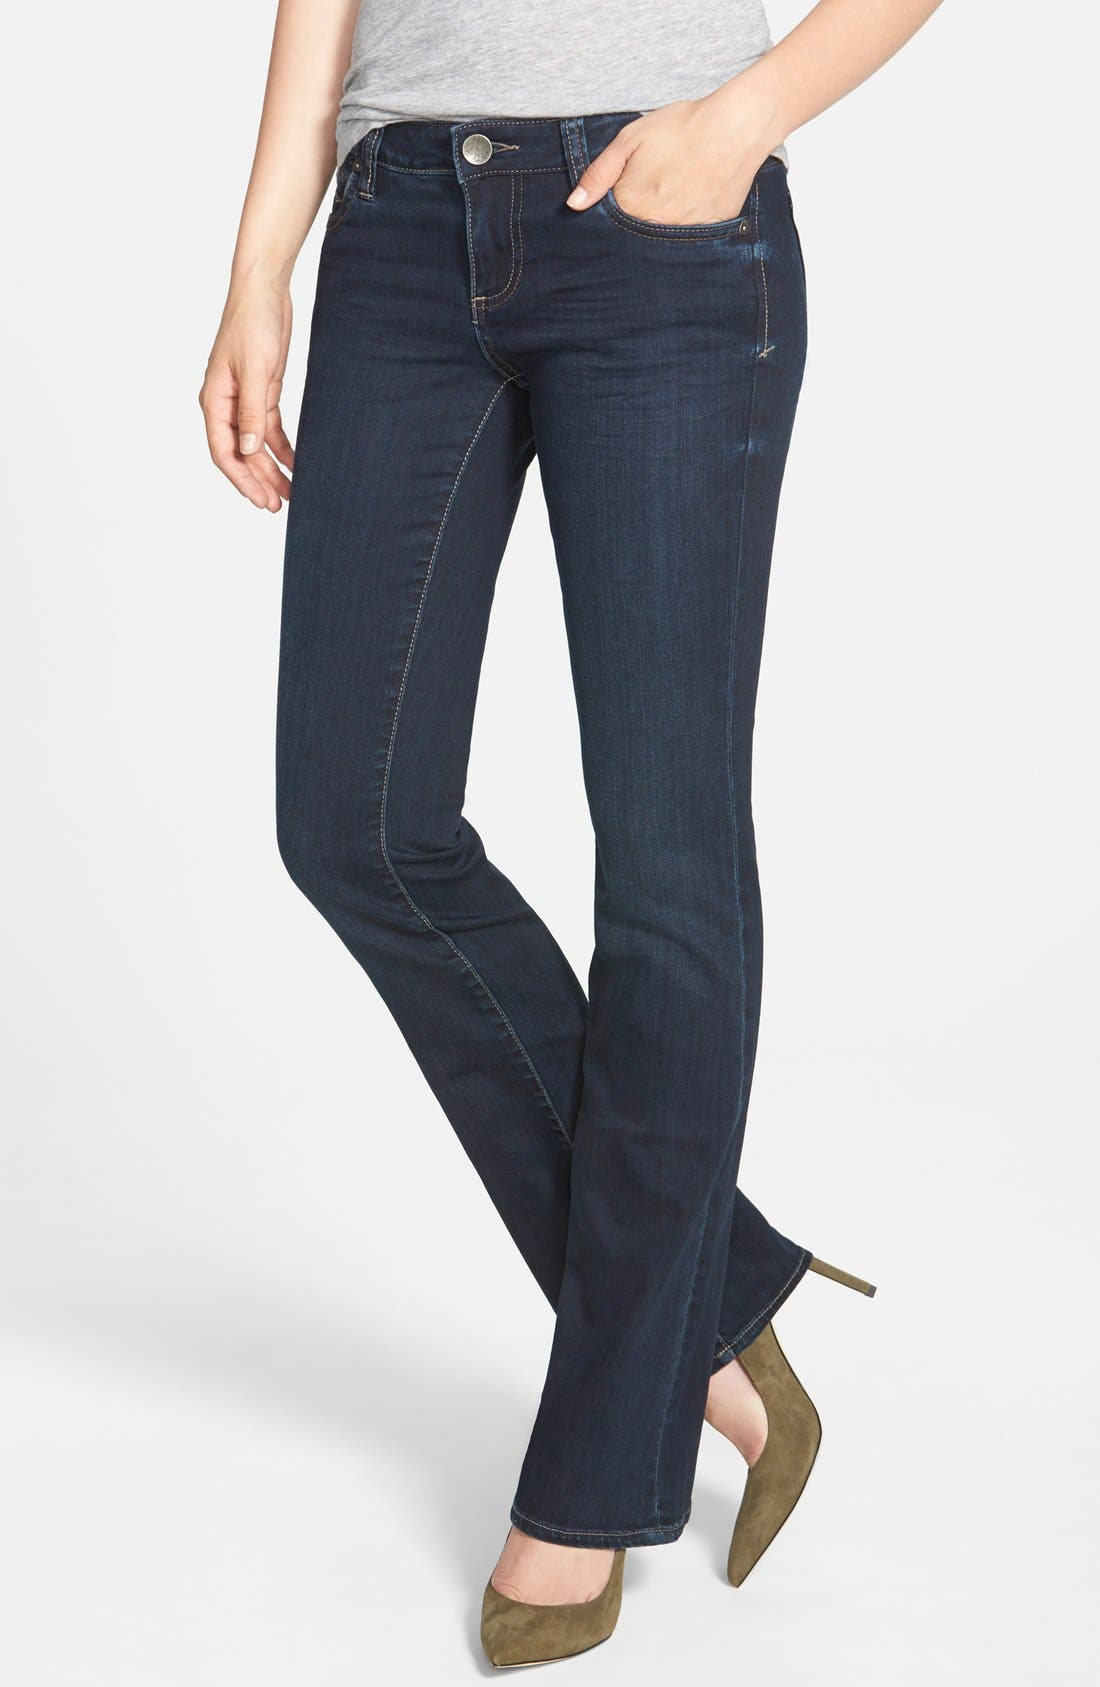 KUT FROM THE KLOTH 'Natalie' Stretch Bootcut Jeans